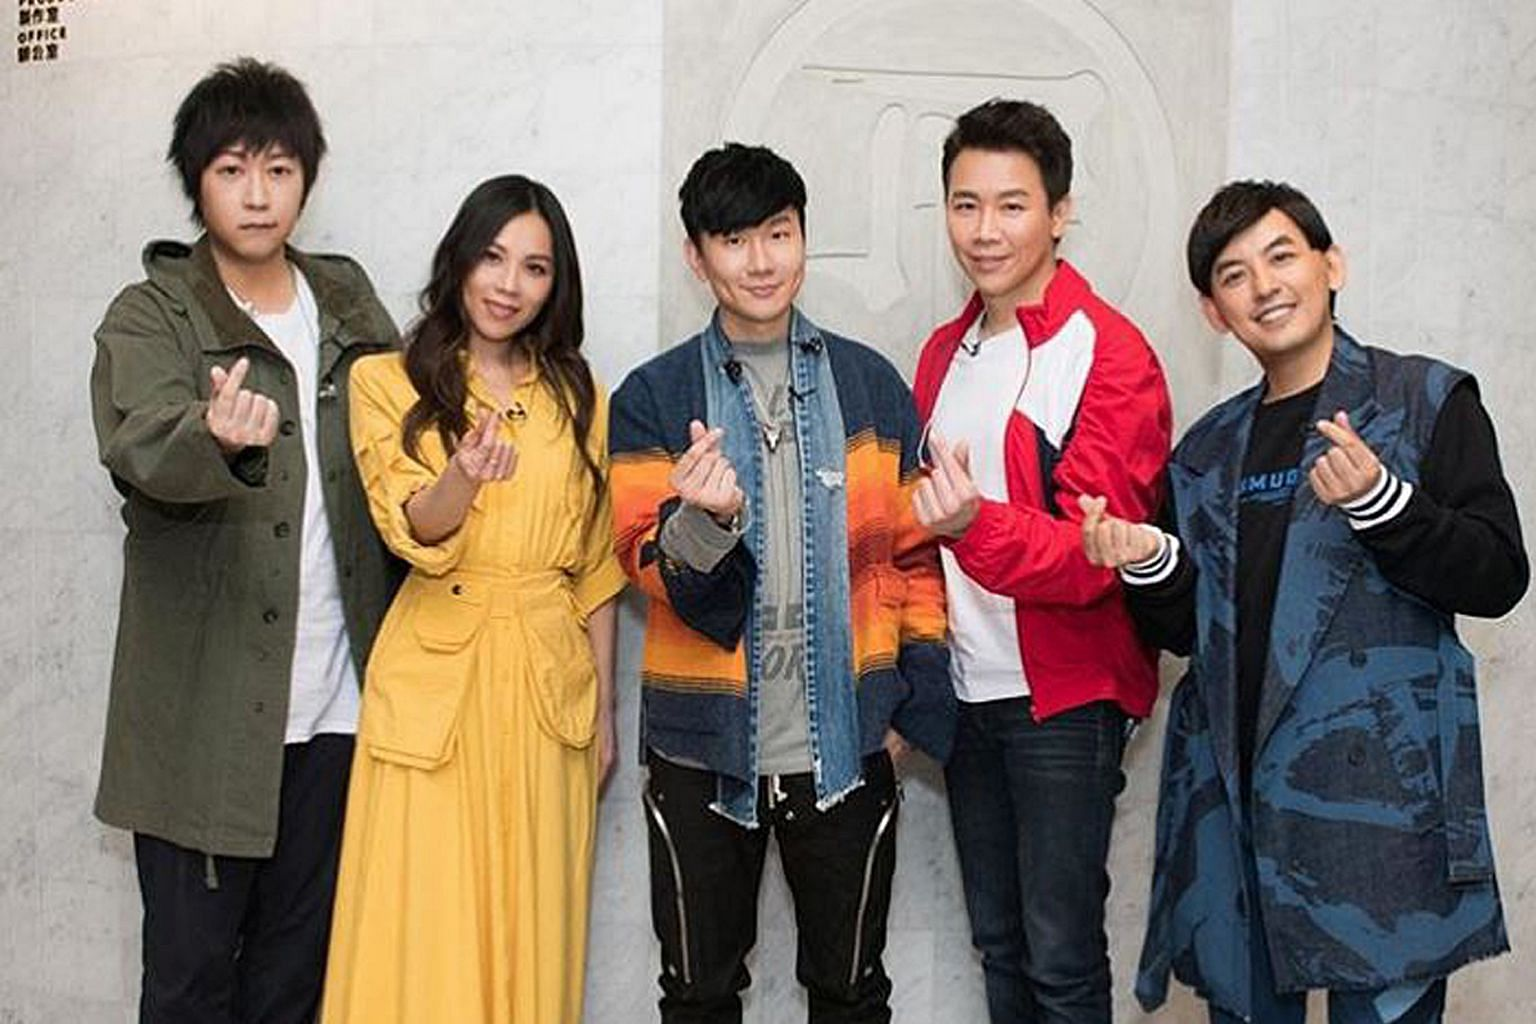 JJ Lin (centre) and his friends in entertainment - (from left) singers Ashin, Tanya Chua and David Tao and host Mickey Huang - appeared on Lin's online fan meeting.